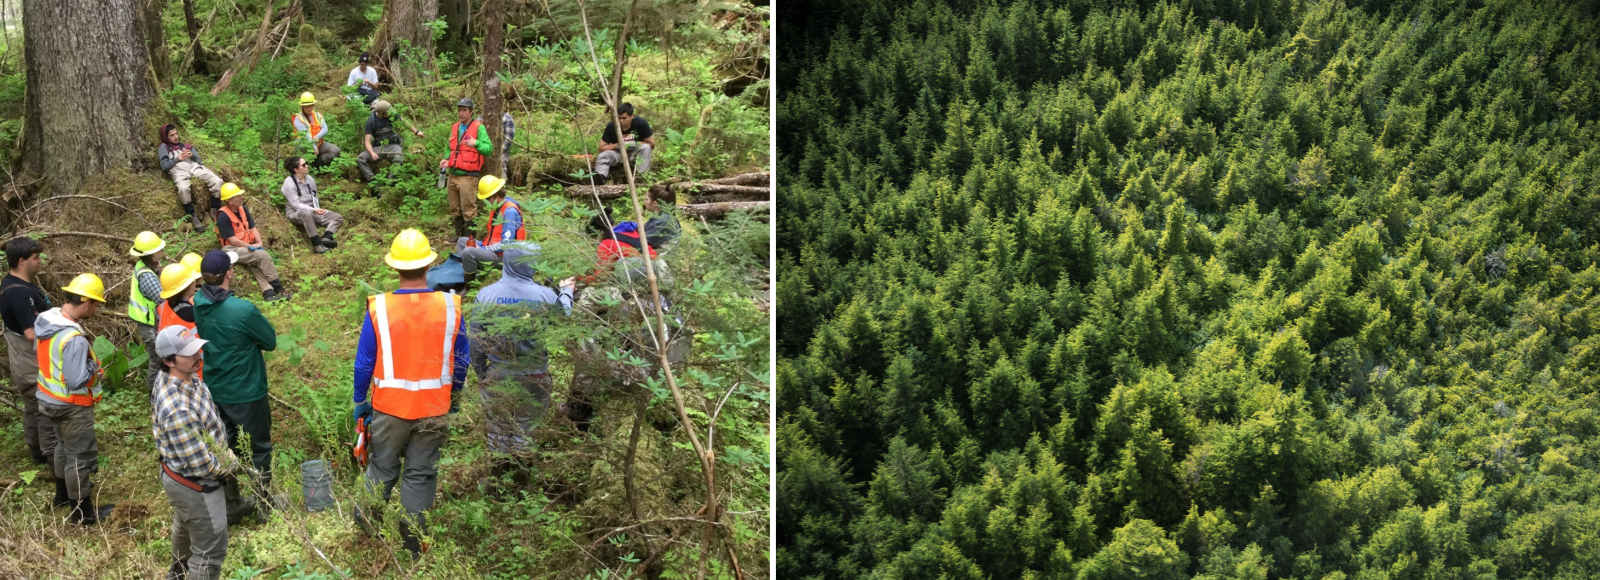 A diptych image. The left side image is a photo showing a crew of a dozen and a half people, some wearing bright orange vests and hard hats, convene in a woodland clearing. The right side is an aerial photograph of a dense forest.